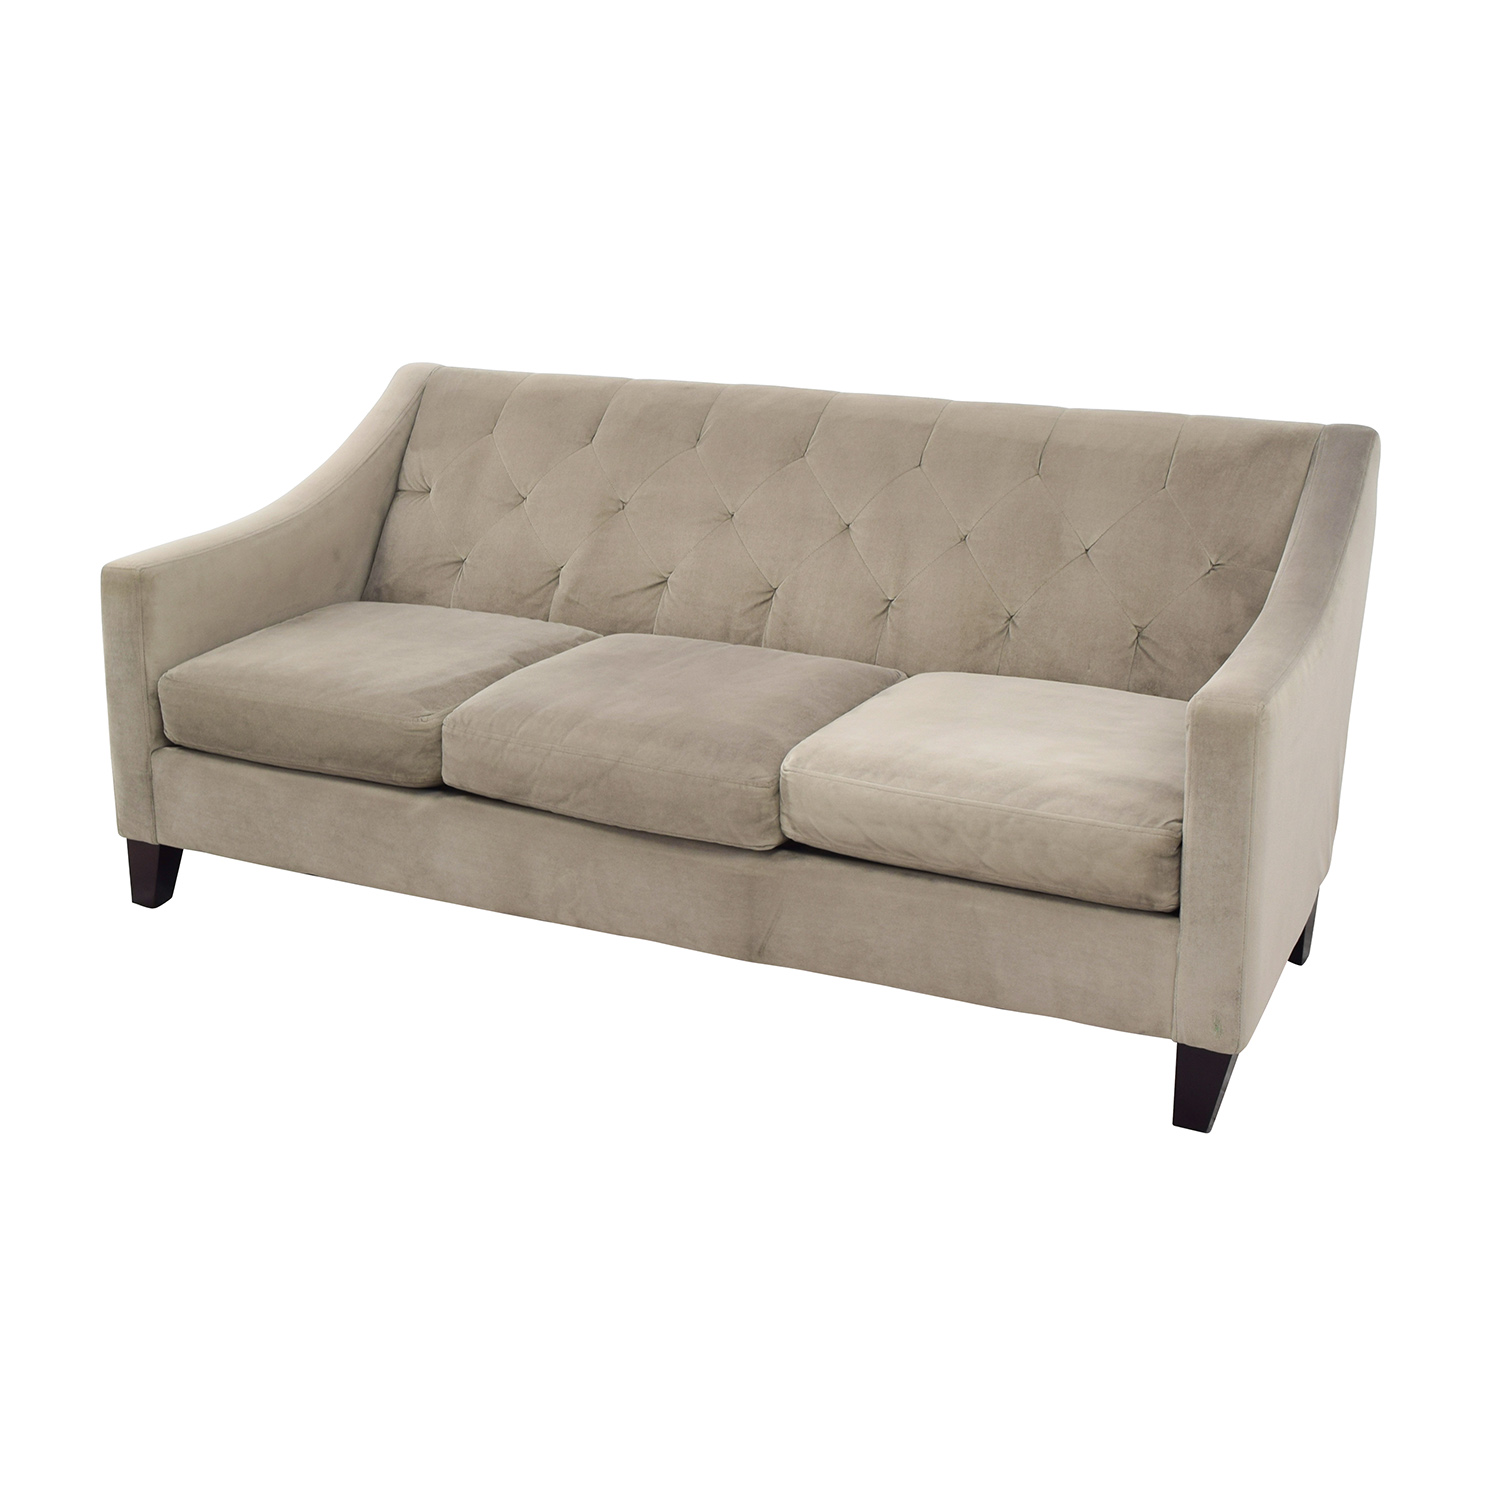 macy s furniture sofa tables intex inflatable review 63% off - macy's tufted back grey couch / sofas